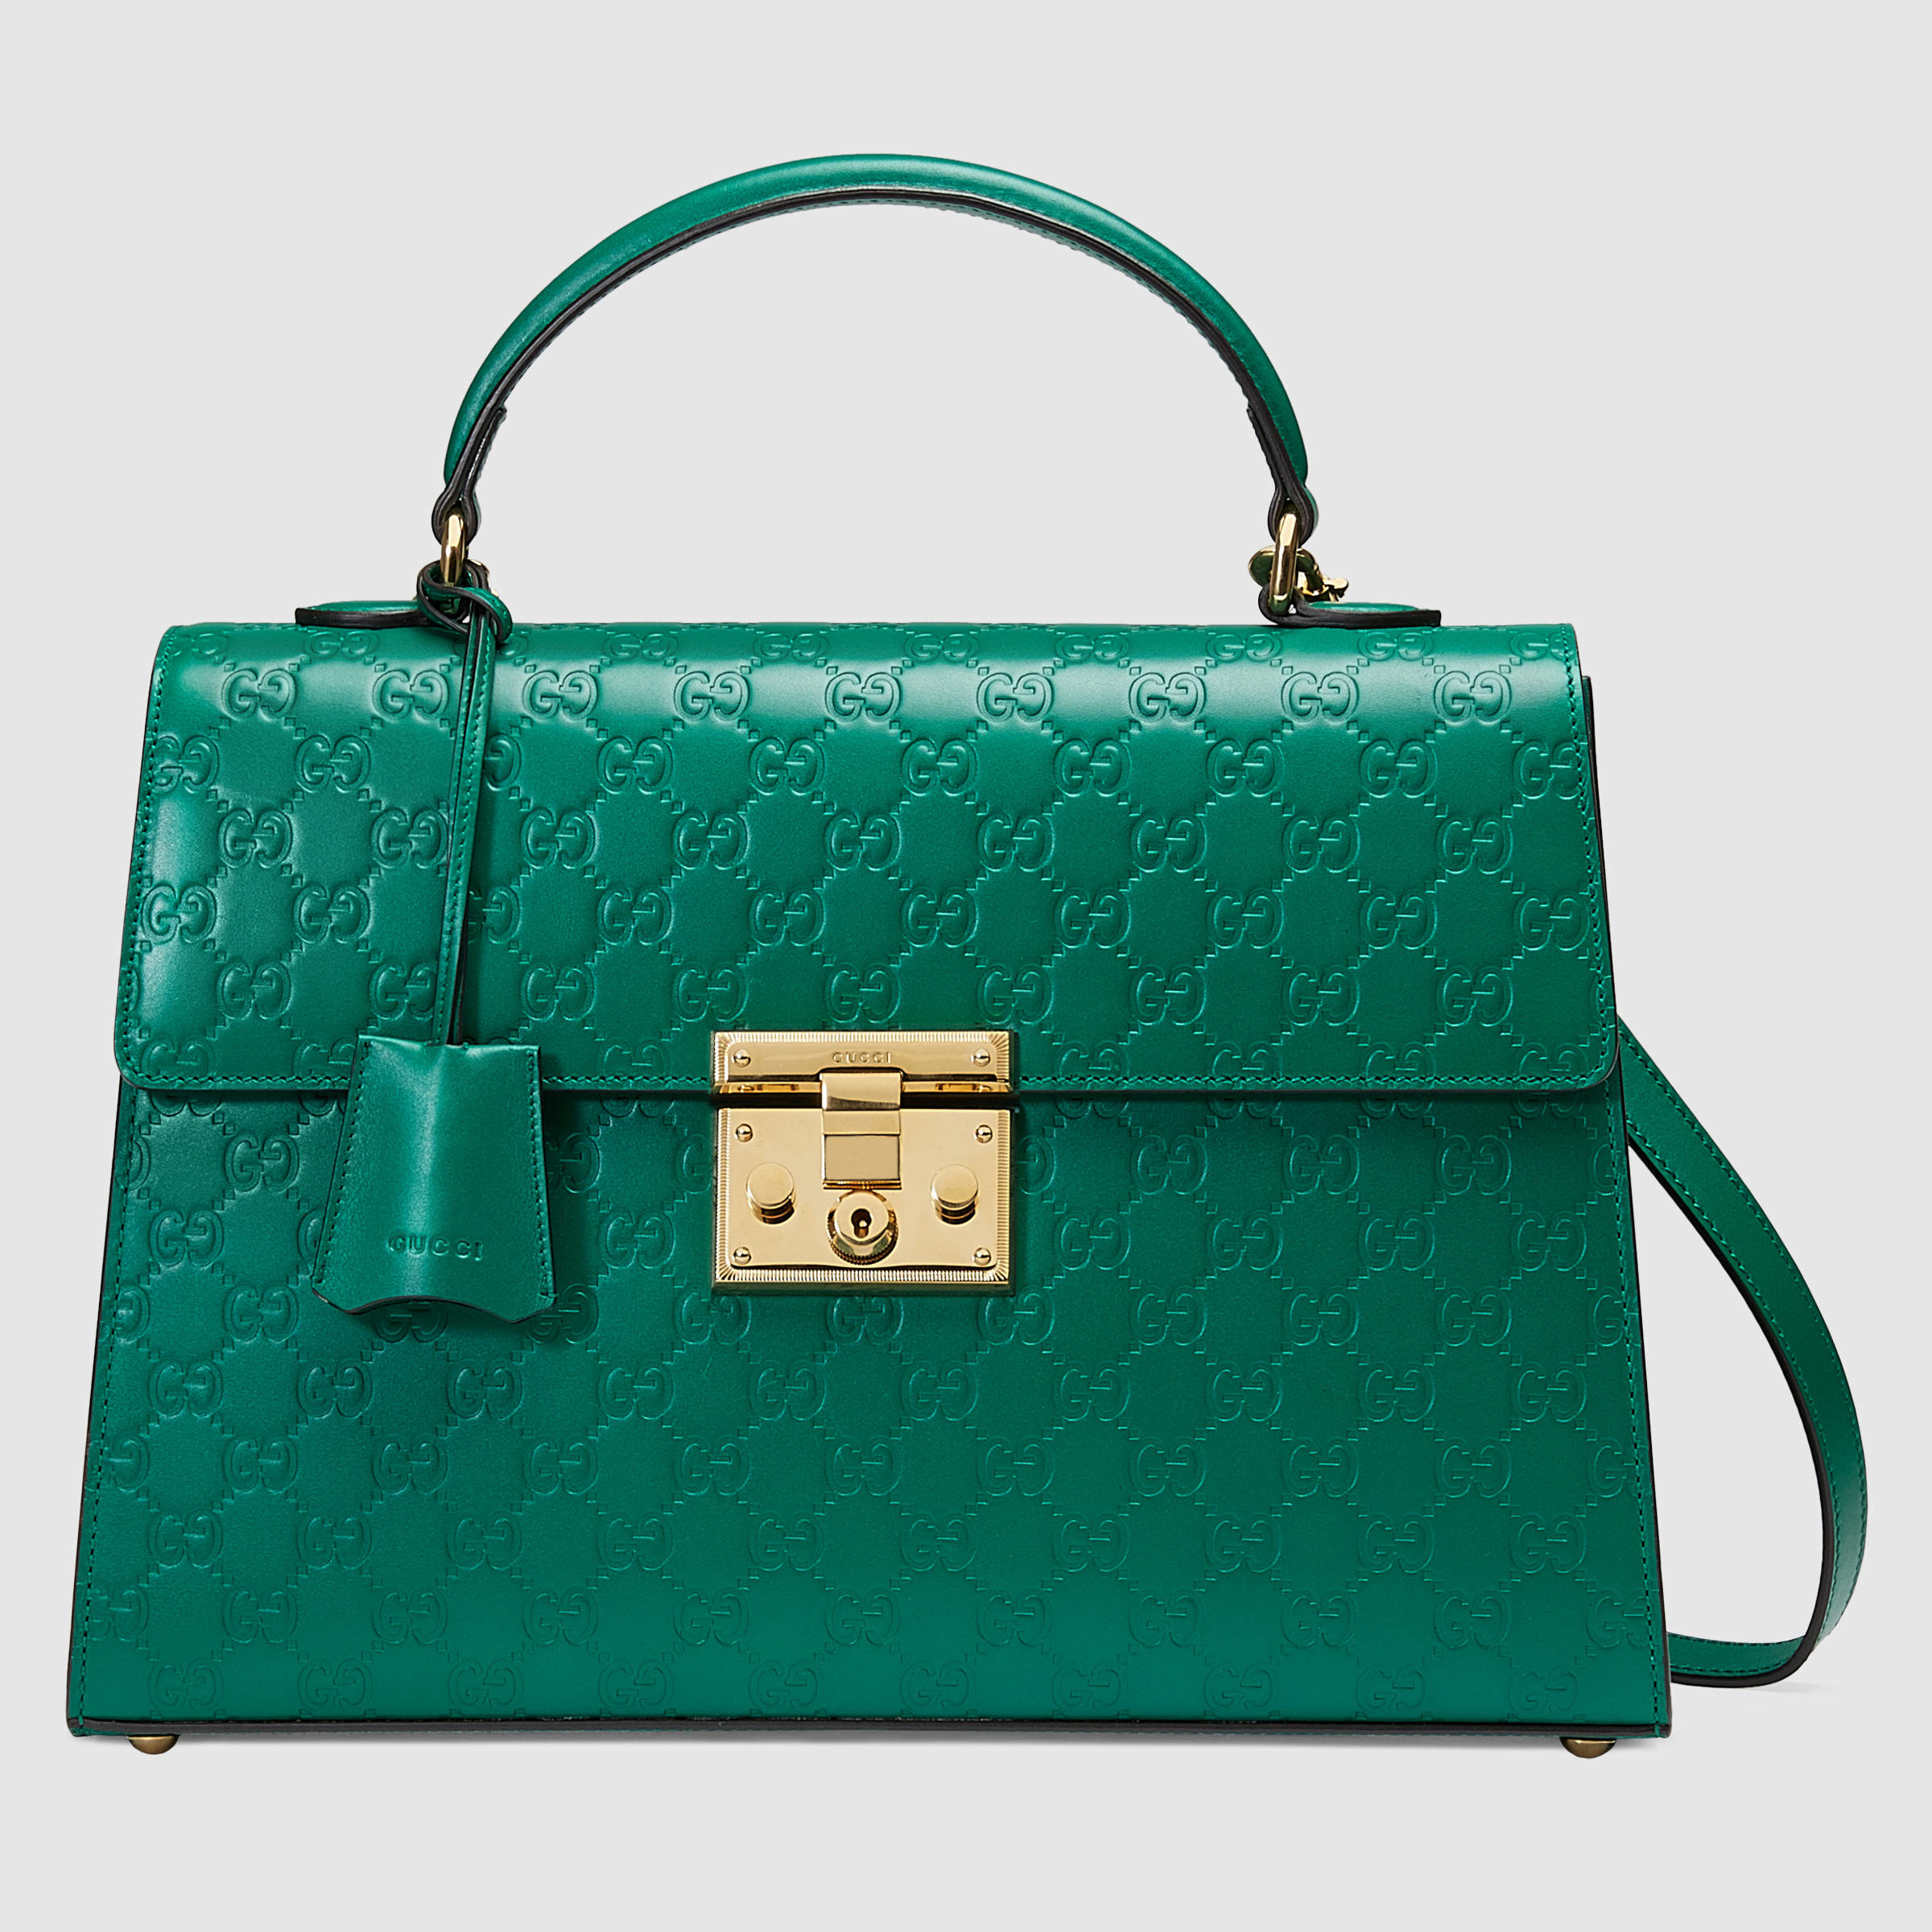 c64154ace76d Lyst - Gucci Padlock Signature Top Handle Leather Bag in Green